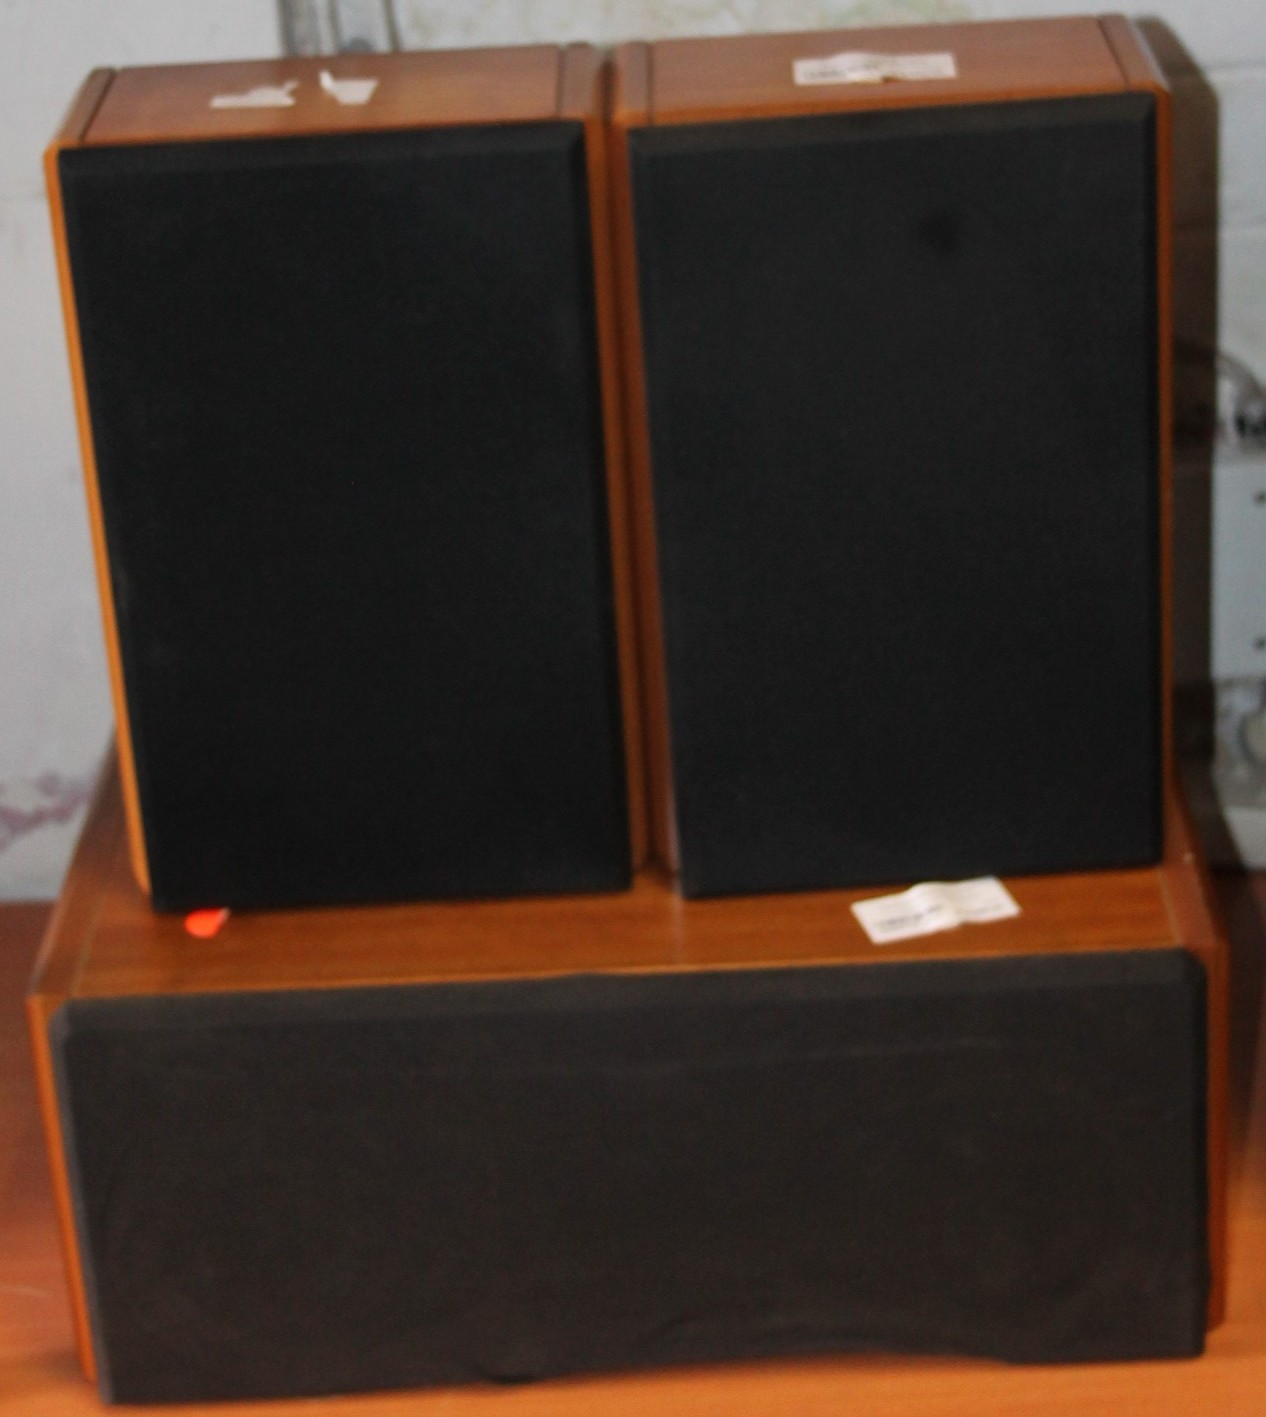 Sonor speakers S028371A  #Rosettenvillepawnshop